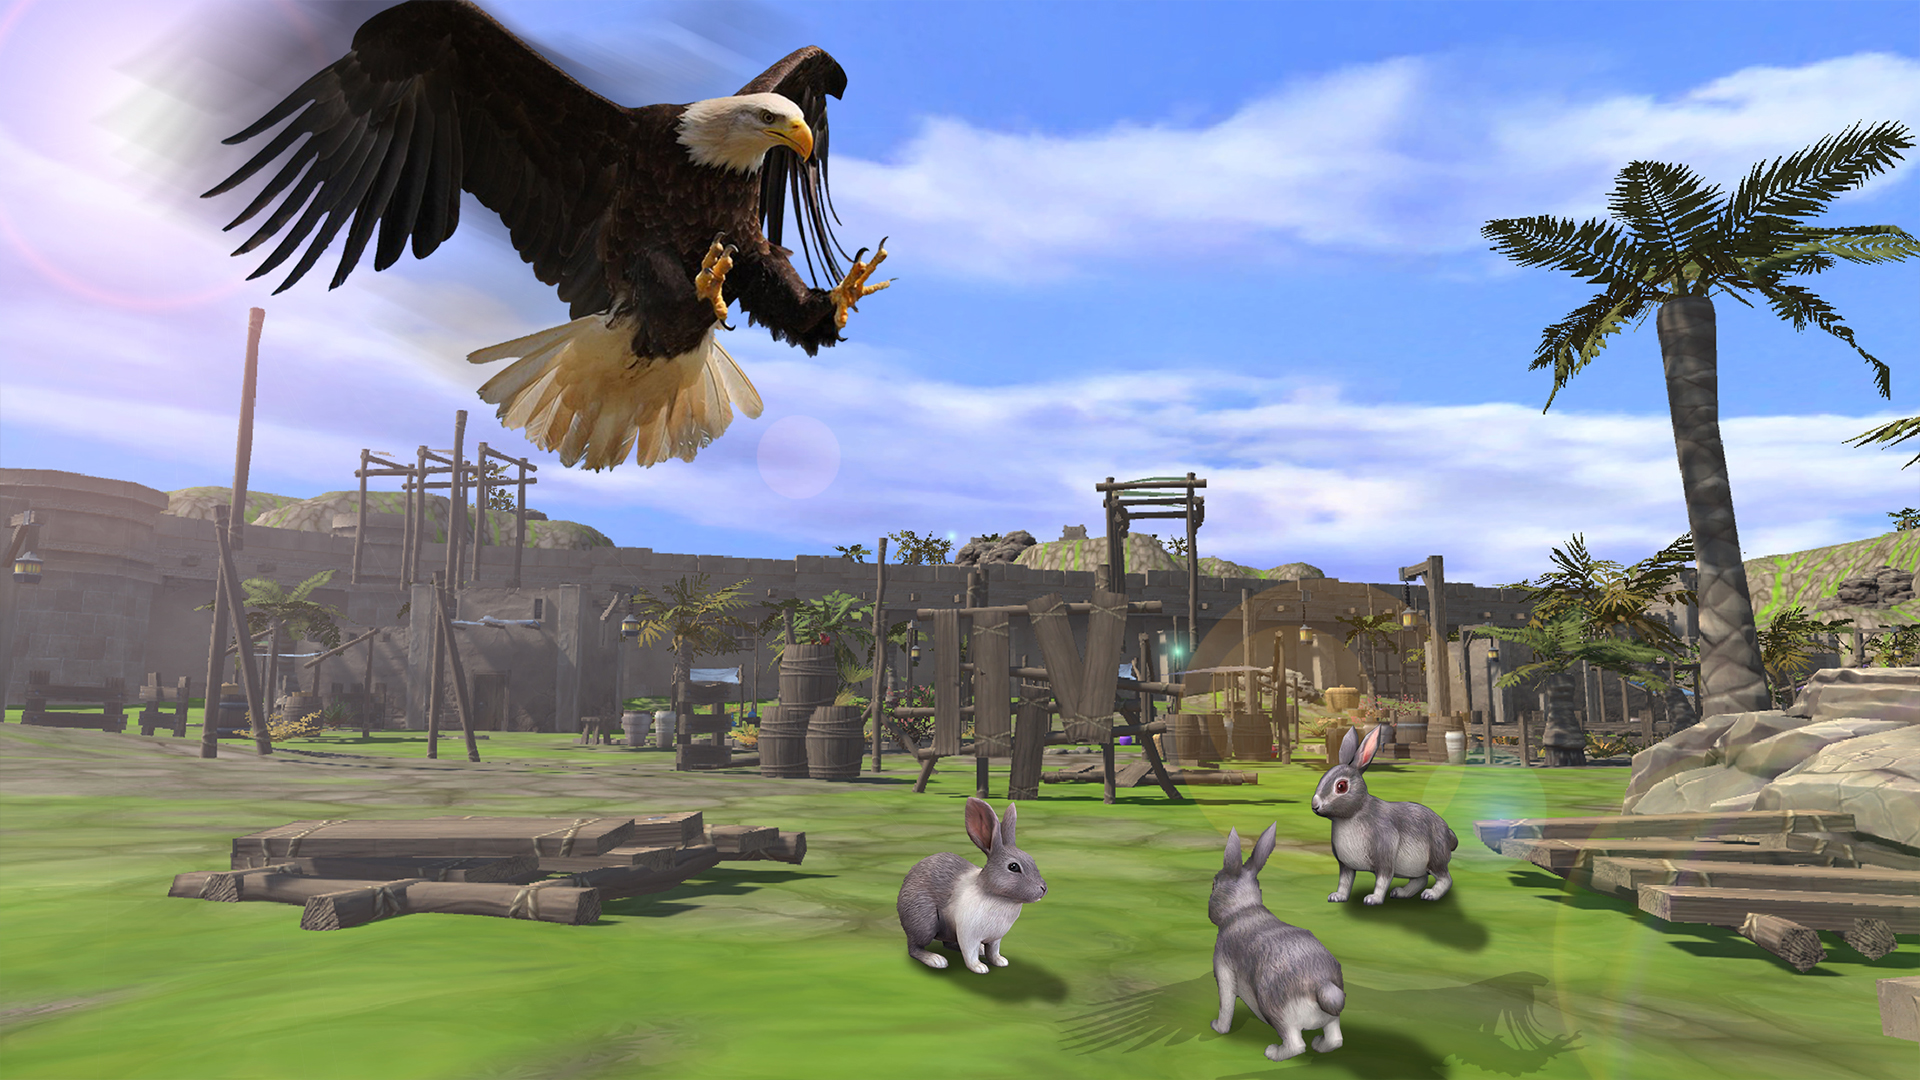 Amazon.com: Life of Golden Eagle Simulator 3D - Bird Simulator: Appstore for Android